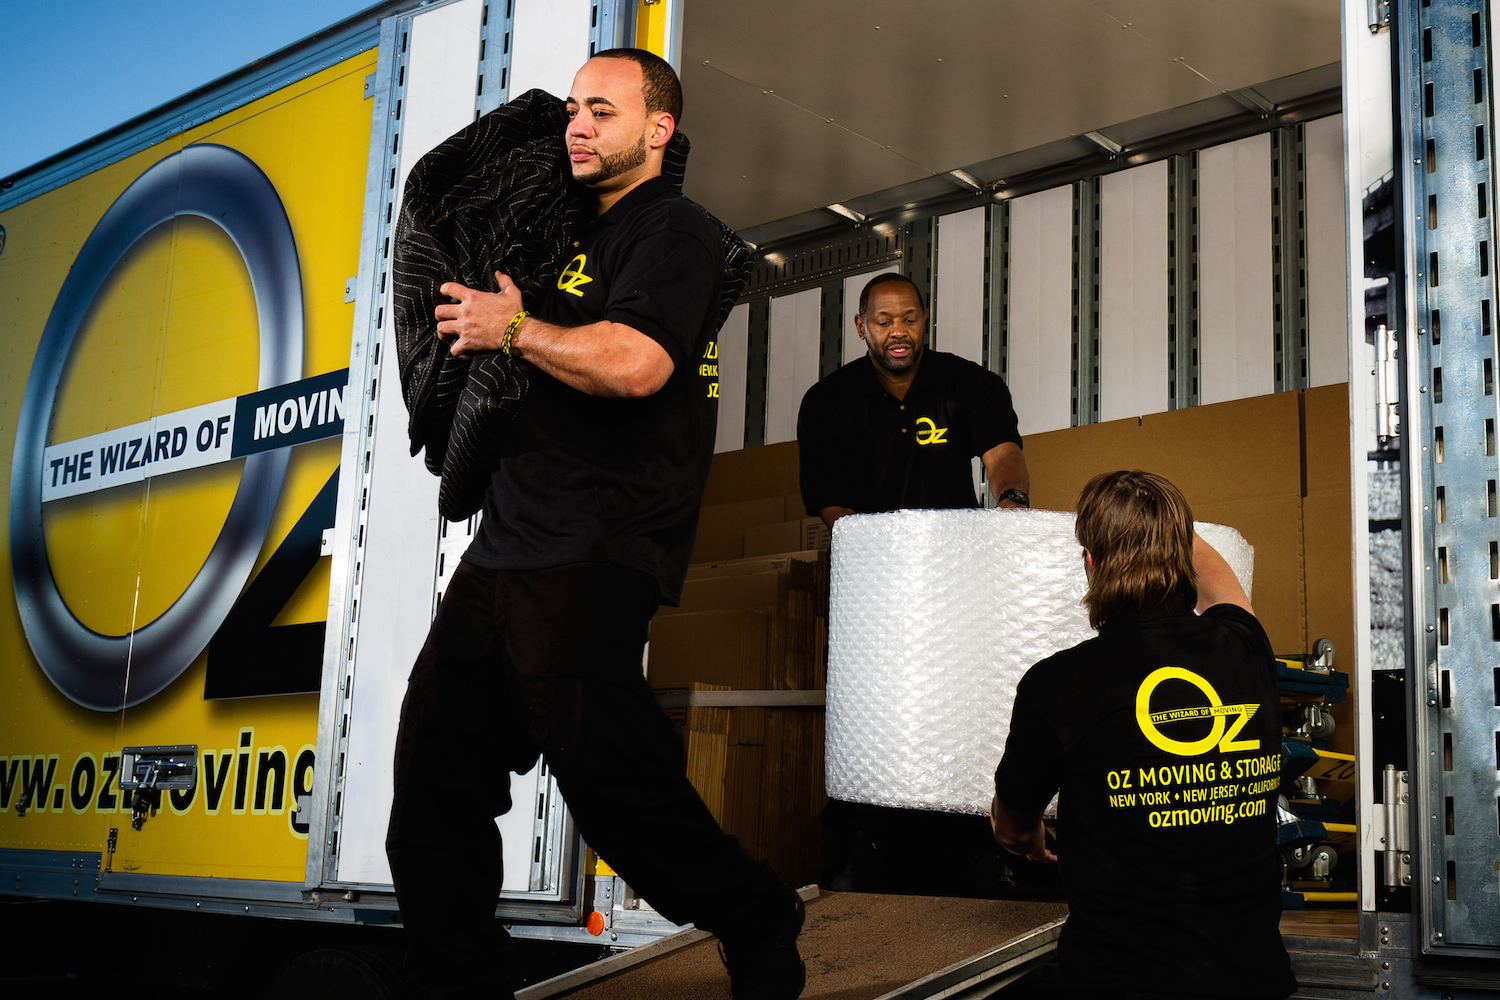 Move with a Team or Oz Movers